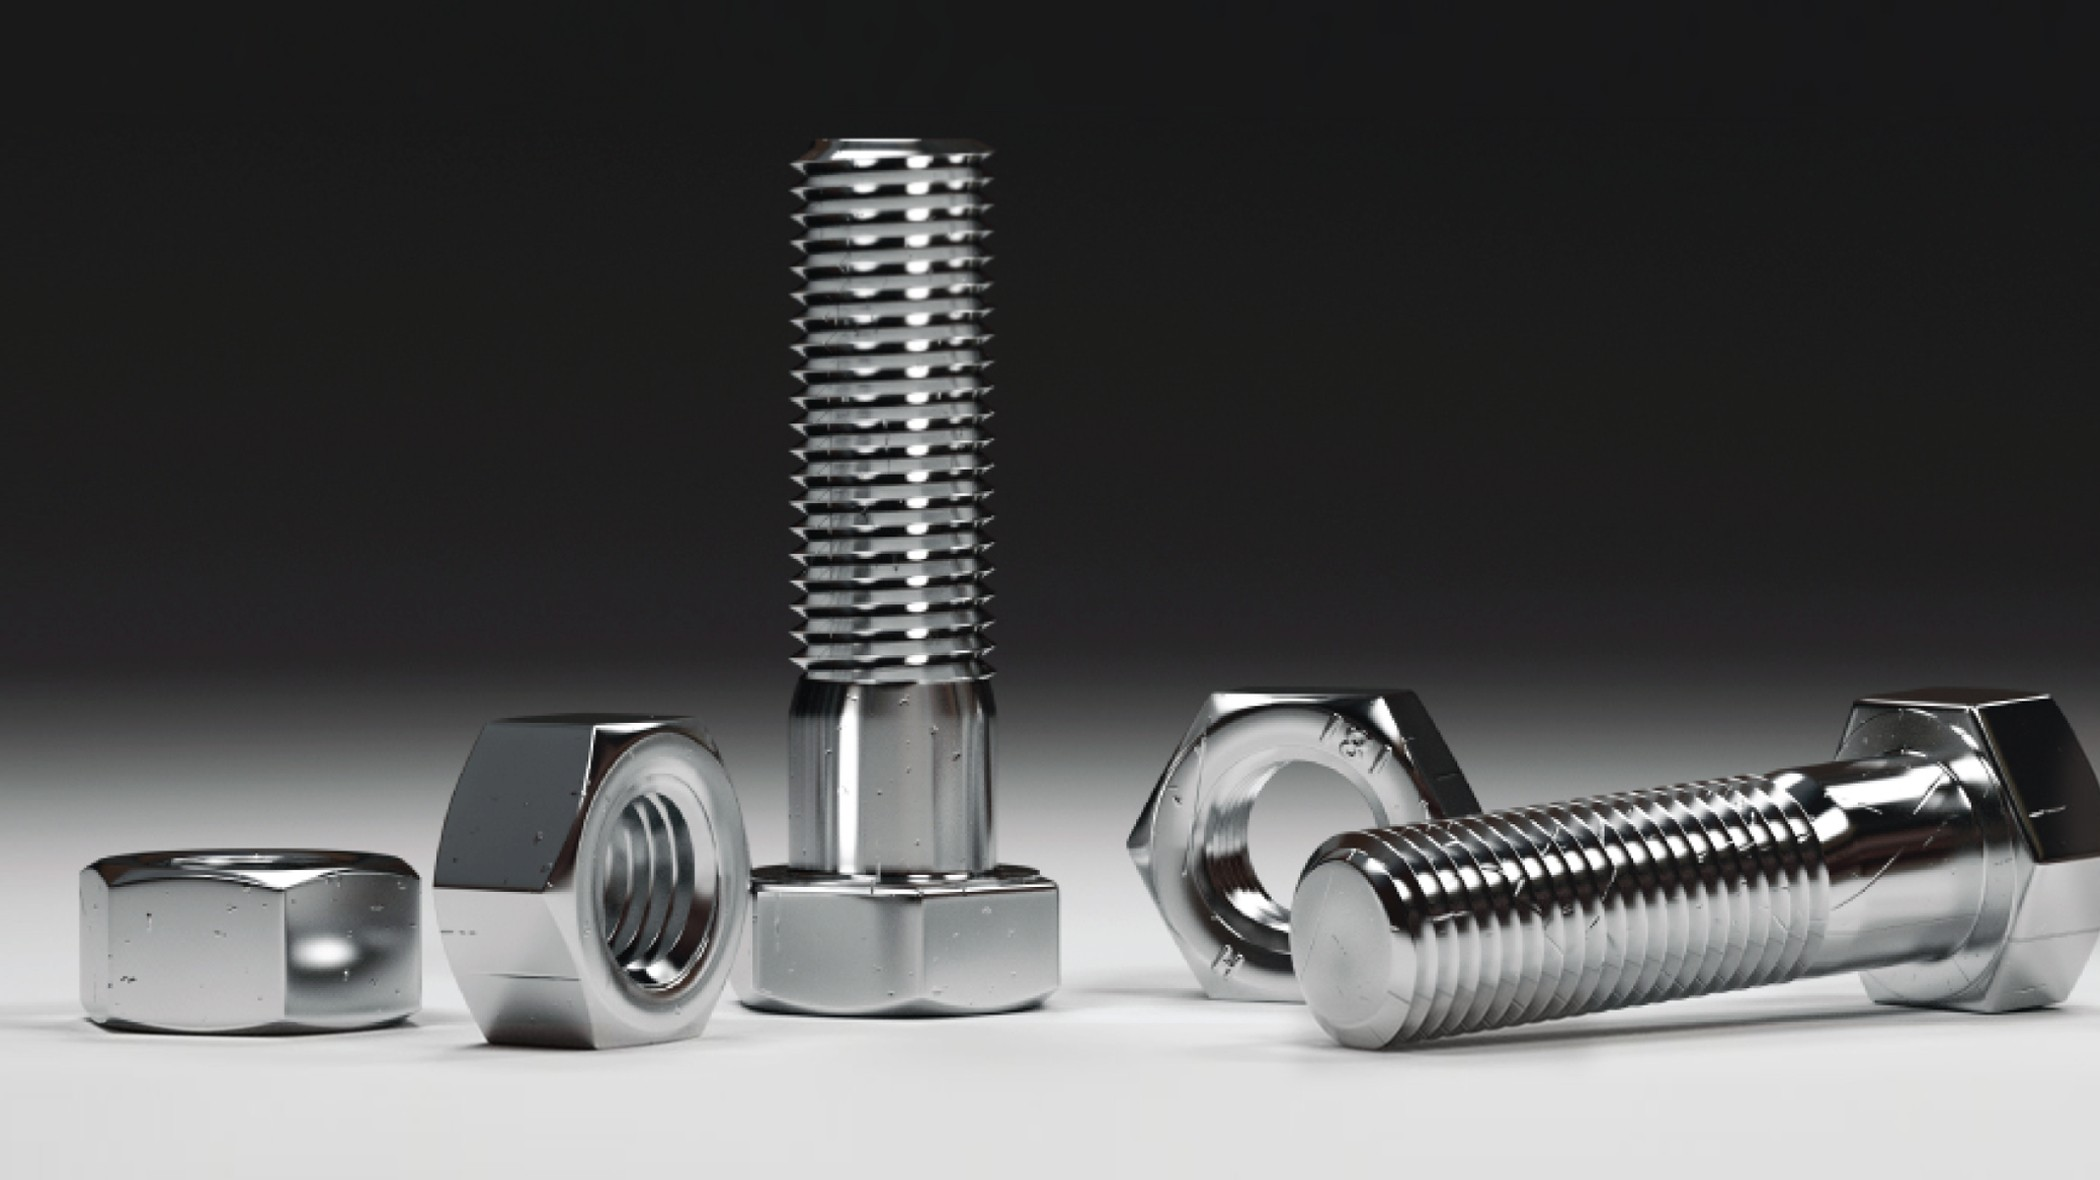 Bolts and Sets